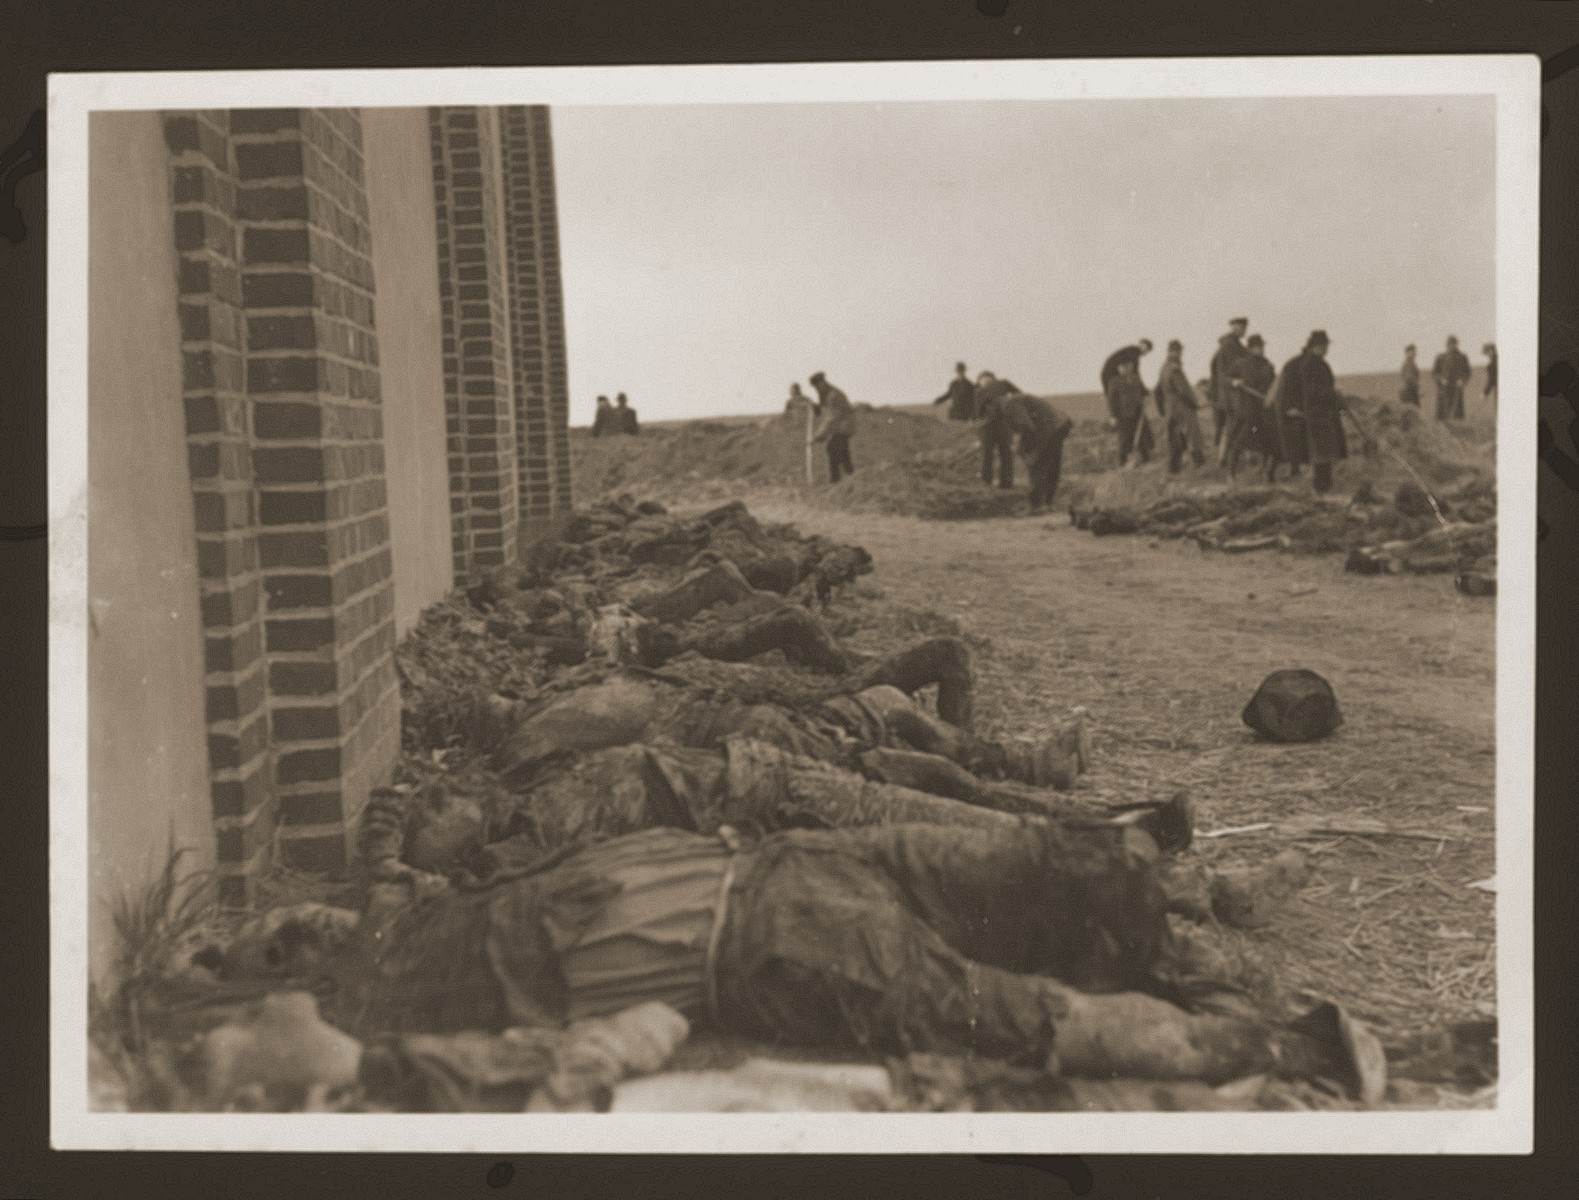 The charred bodies of prisoners burned alive by the SS lie outside of a barn outside of Gardelegen.  In the background German civilians exhume bodies buried in a mass grave by the SS.